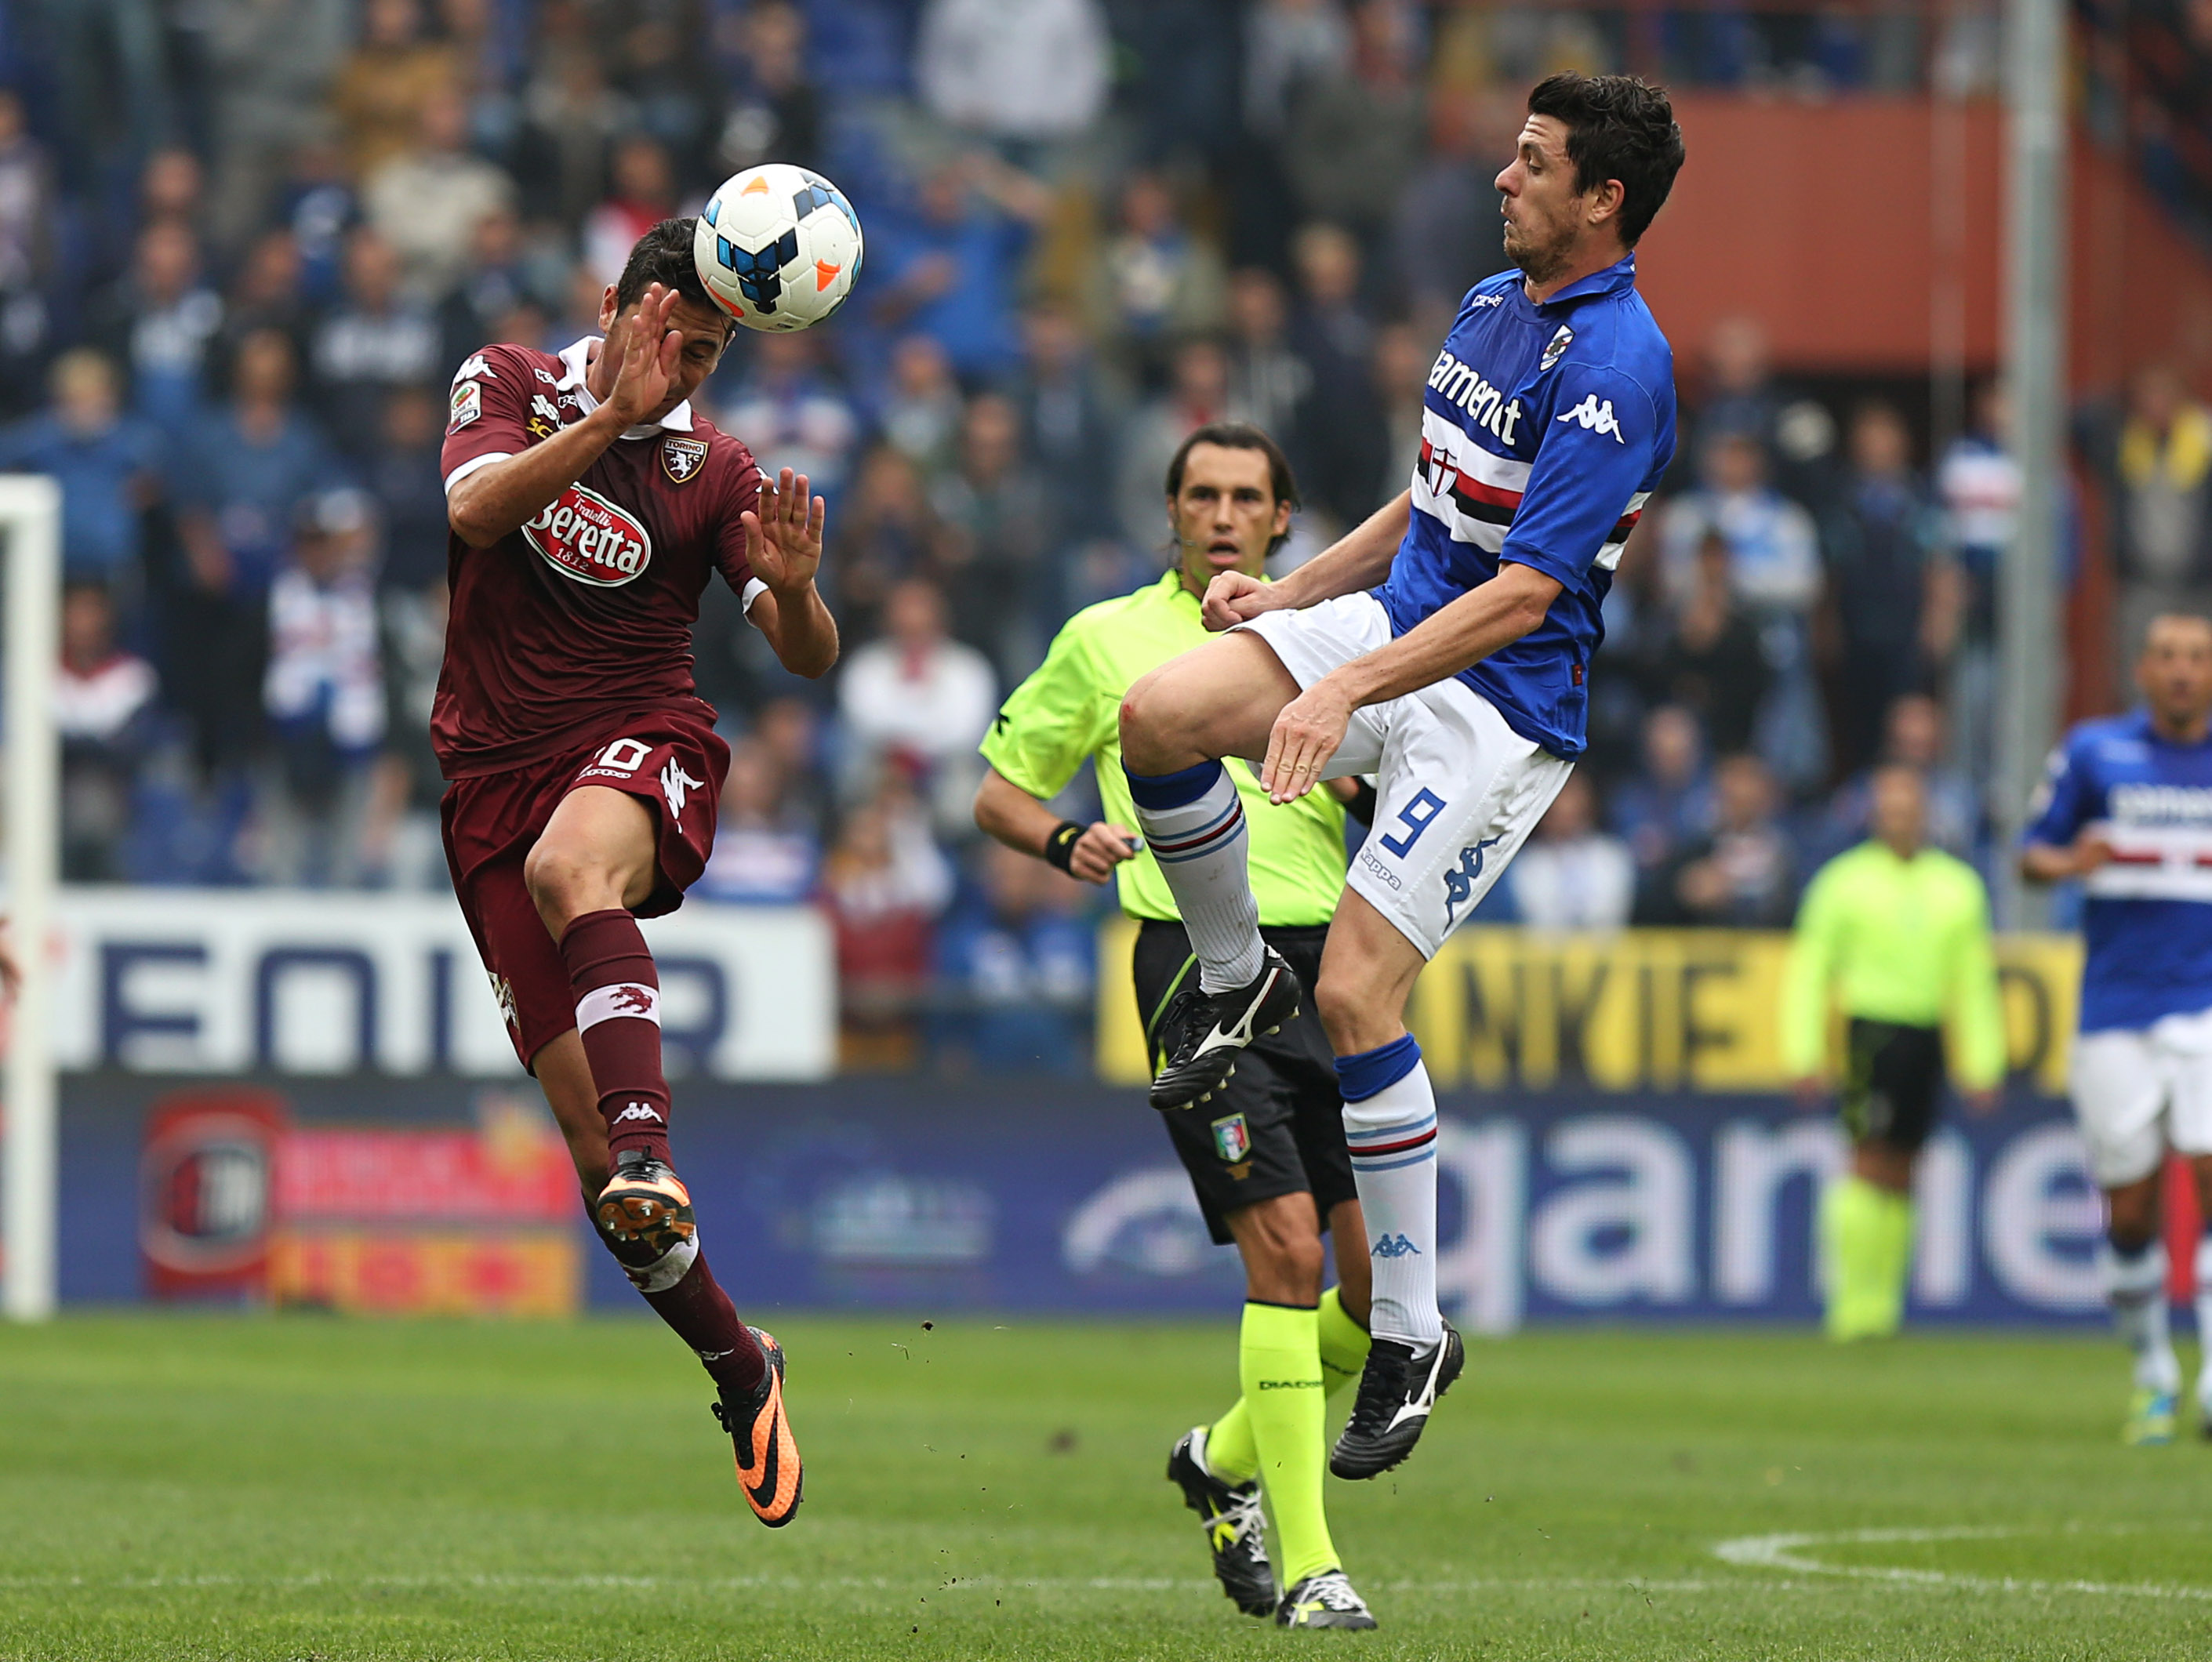 Torino midfielder Giuseppe Vives, left, and Sampdoria forward Nicola Pozzi battle for the ball during a Serie A soccer match between Sampdoria and Torino, in Genoa, Italy, Sunday, Oct. 6, 2013